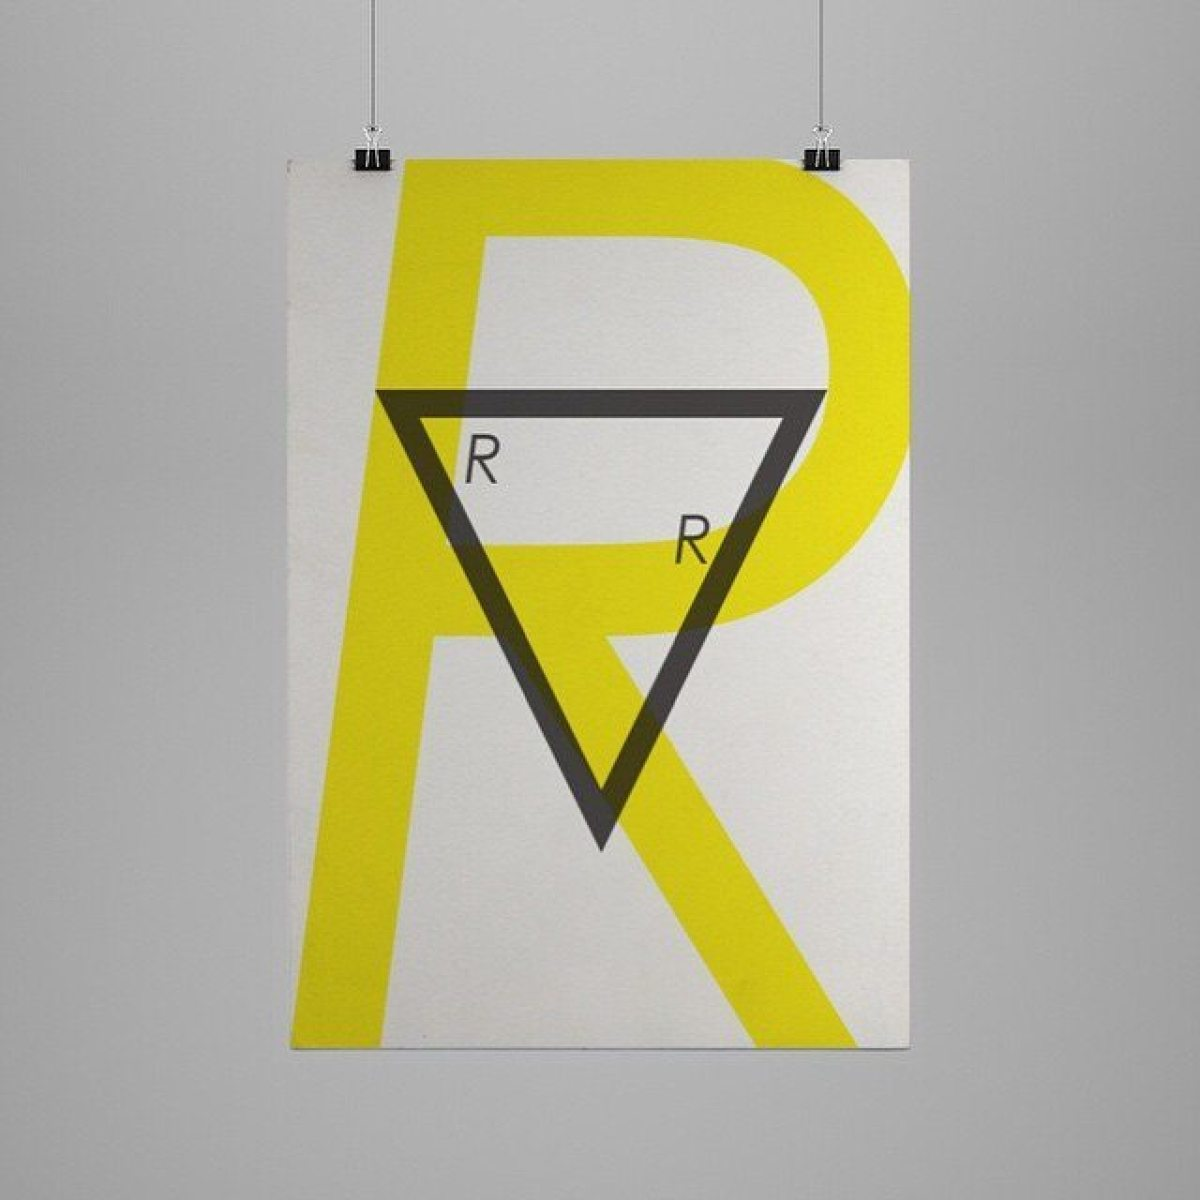 Skatepark poster series. The Front Skatepark - Ramp Room #graphic #graphicdesign #graphicdesignagency #type #typeface #typography #poster #yellow